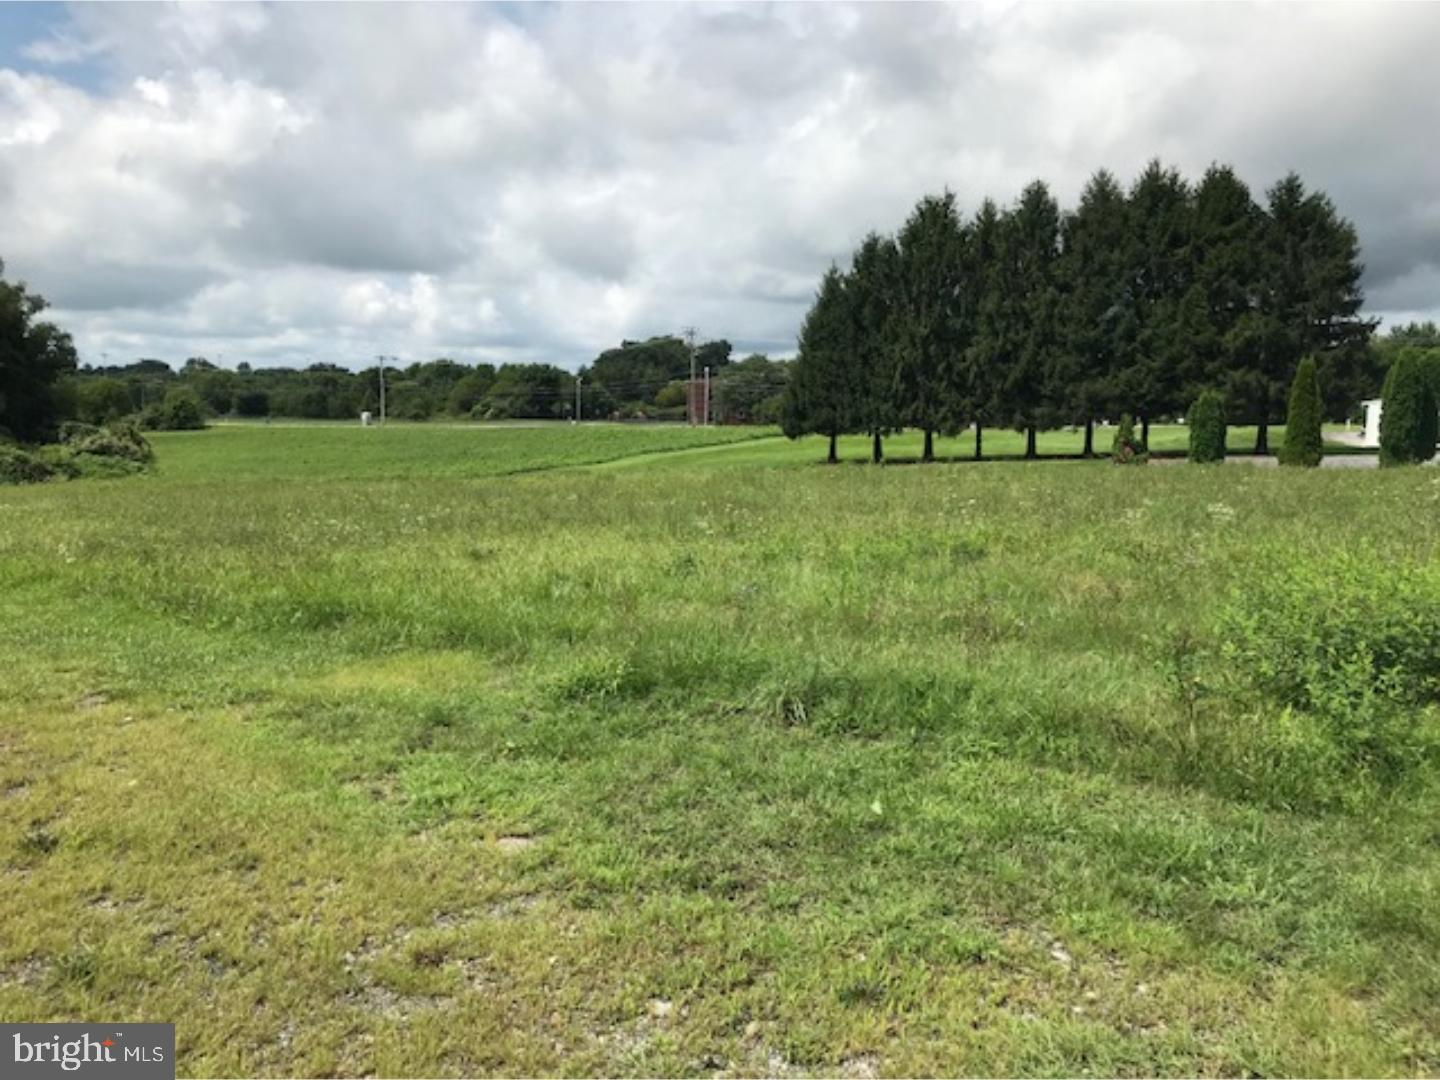 3.77 Acre commercial lot.  Public water and sewer available or onsite systems.  Approximately 1+ acre building envelope.  Penn Dot Highway Permit required.  Seller is licensed PA Real Estate agent.